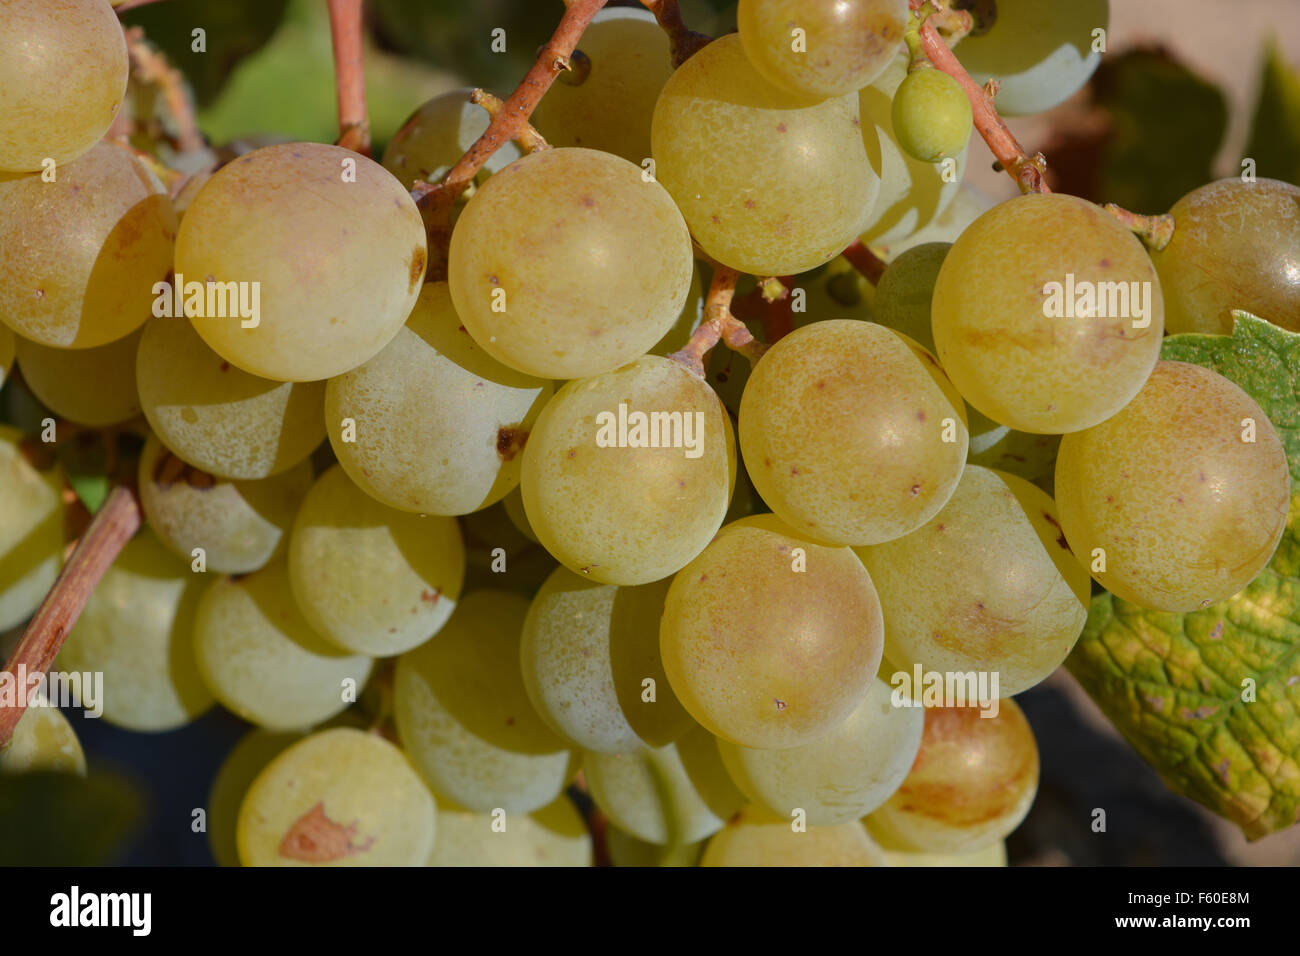 Muscat grapes ripening on the vine. Spain Stock Photo